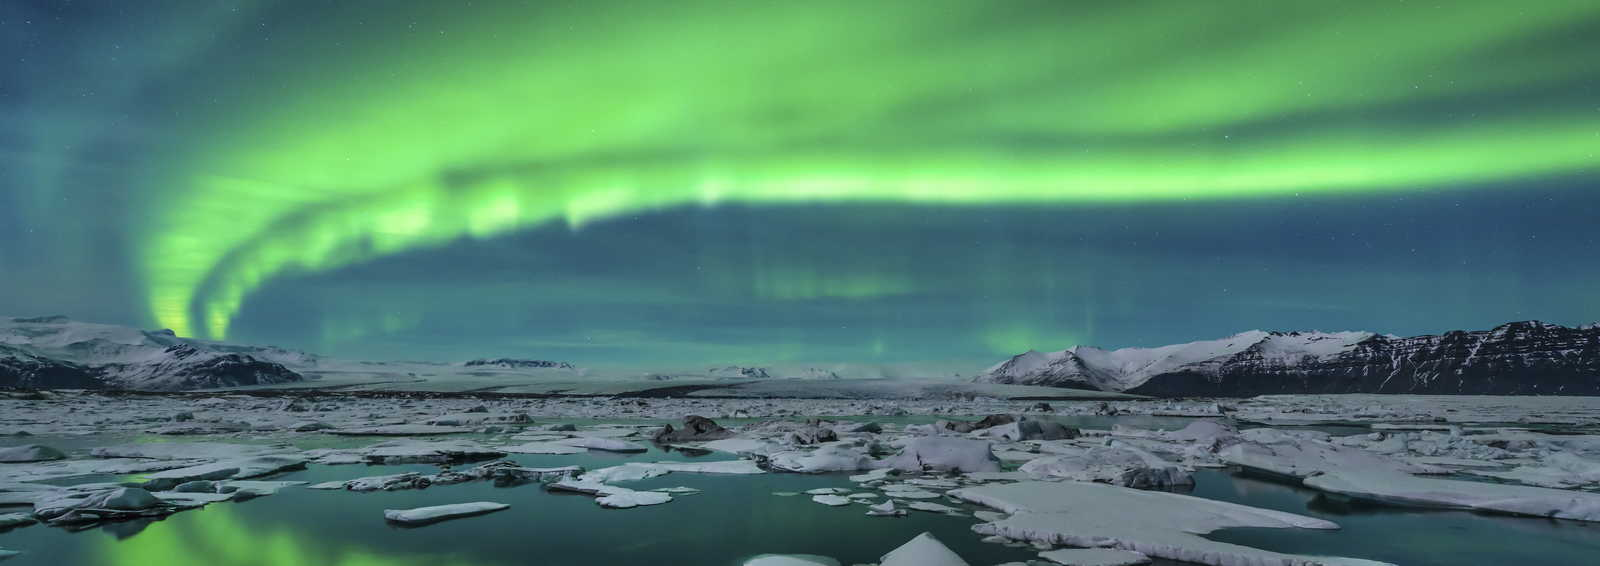 Aurora over Jokulsarlon, Sweden